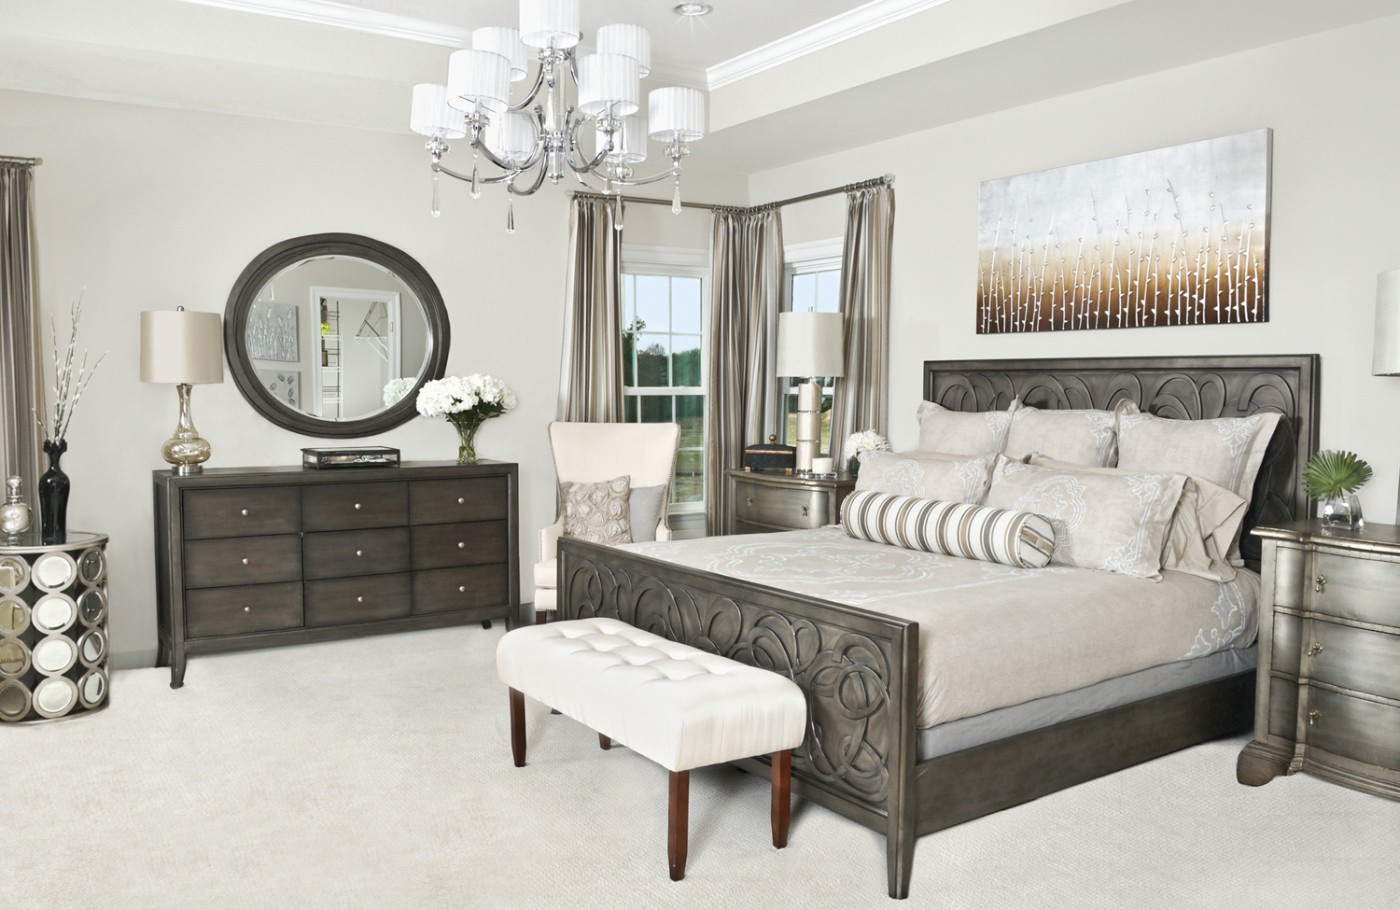 Model Home Interiors New Model Home Interiors » Model Homes Design Ideas